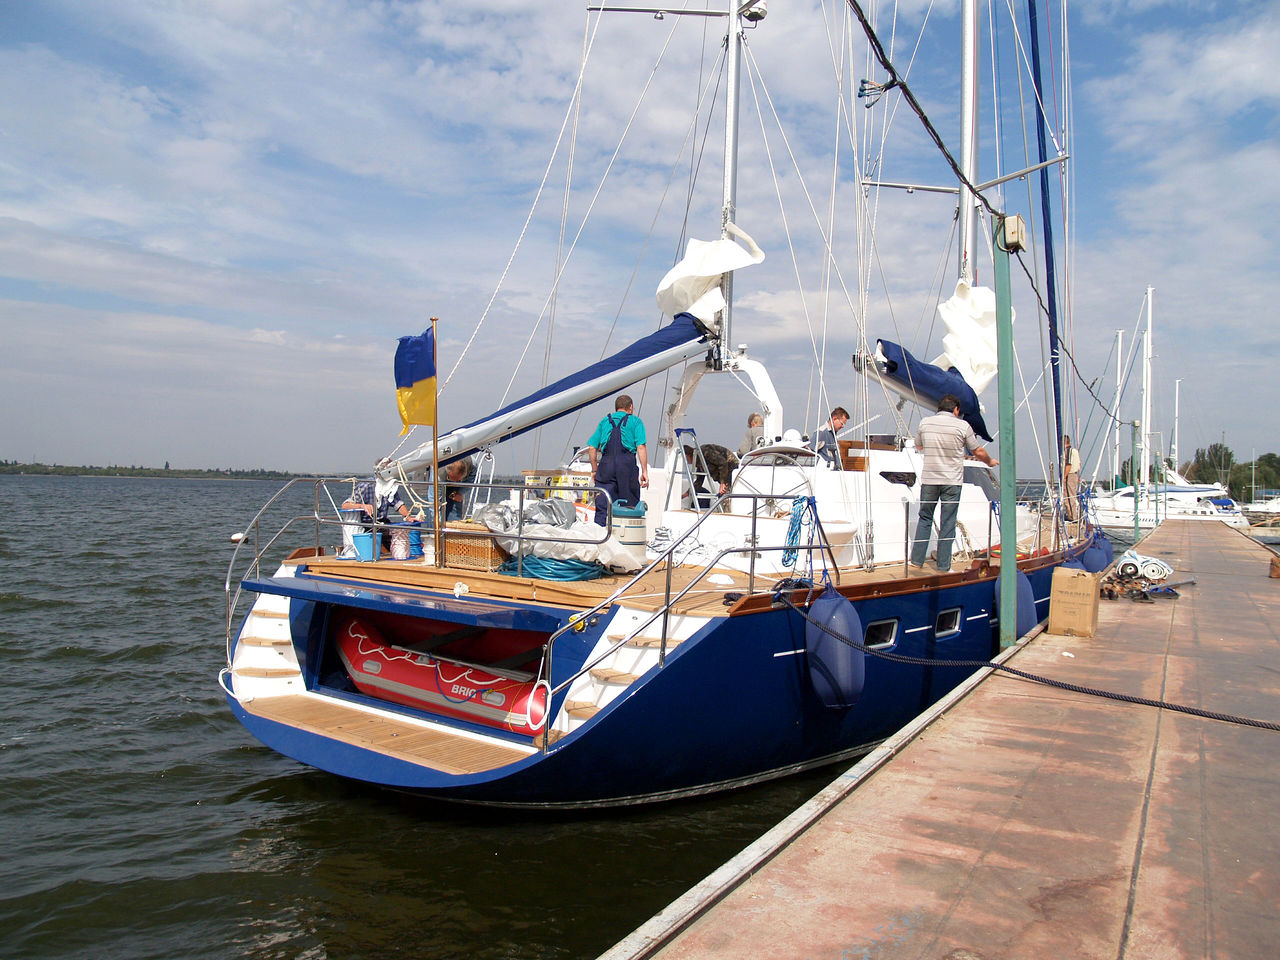 Yachts For Sale: Ketch Yachts For Sale